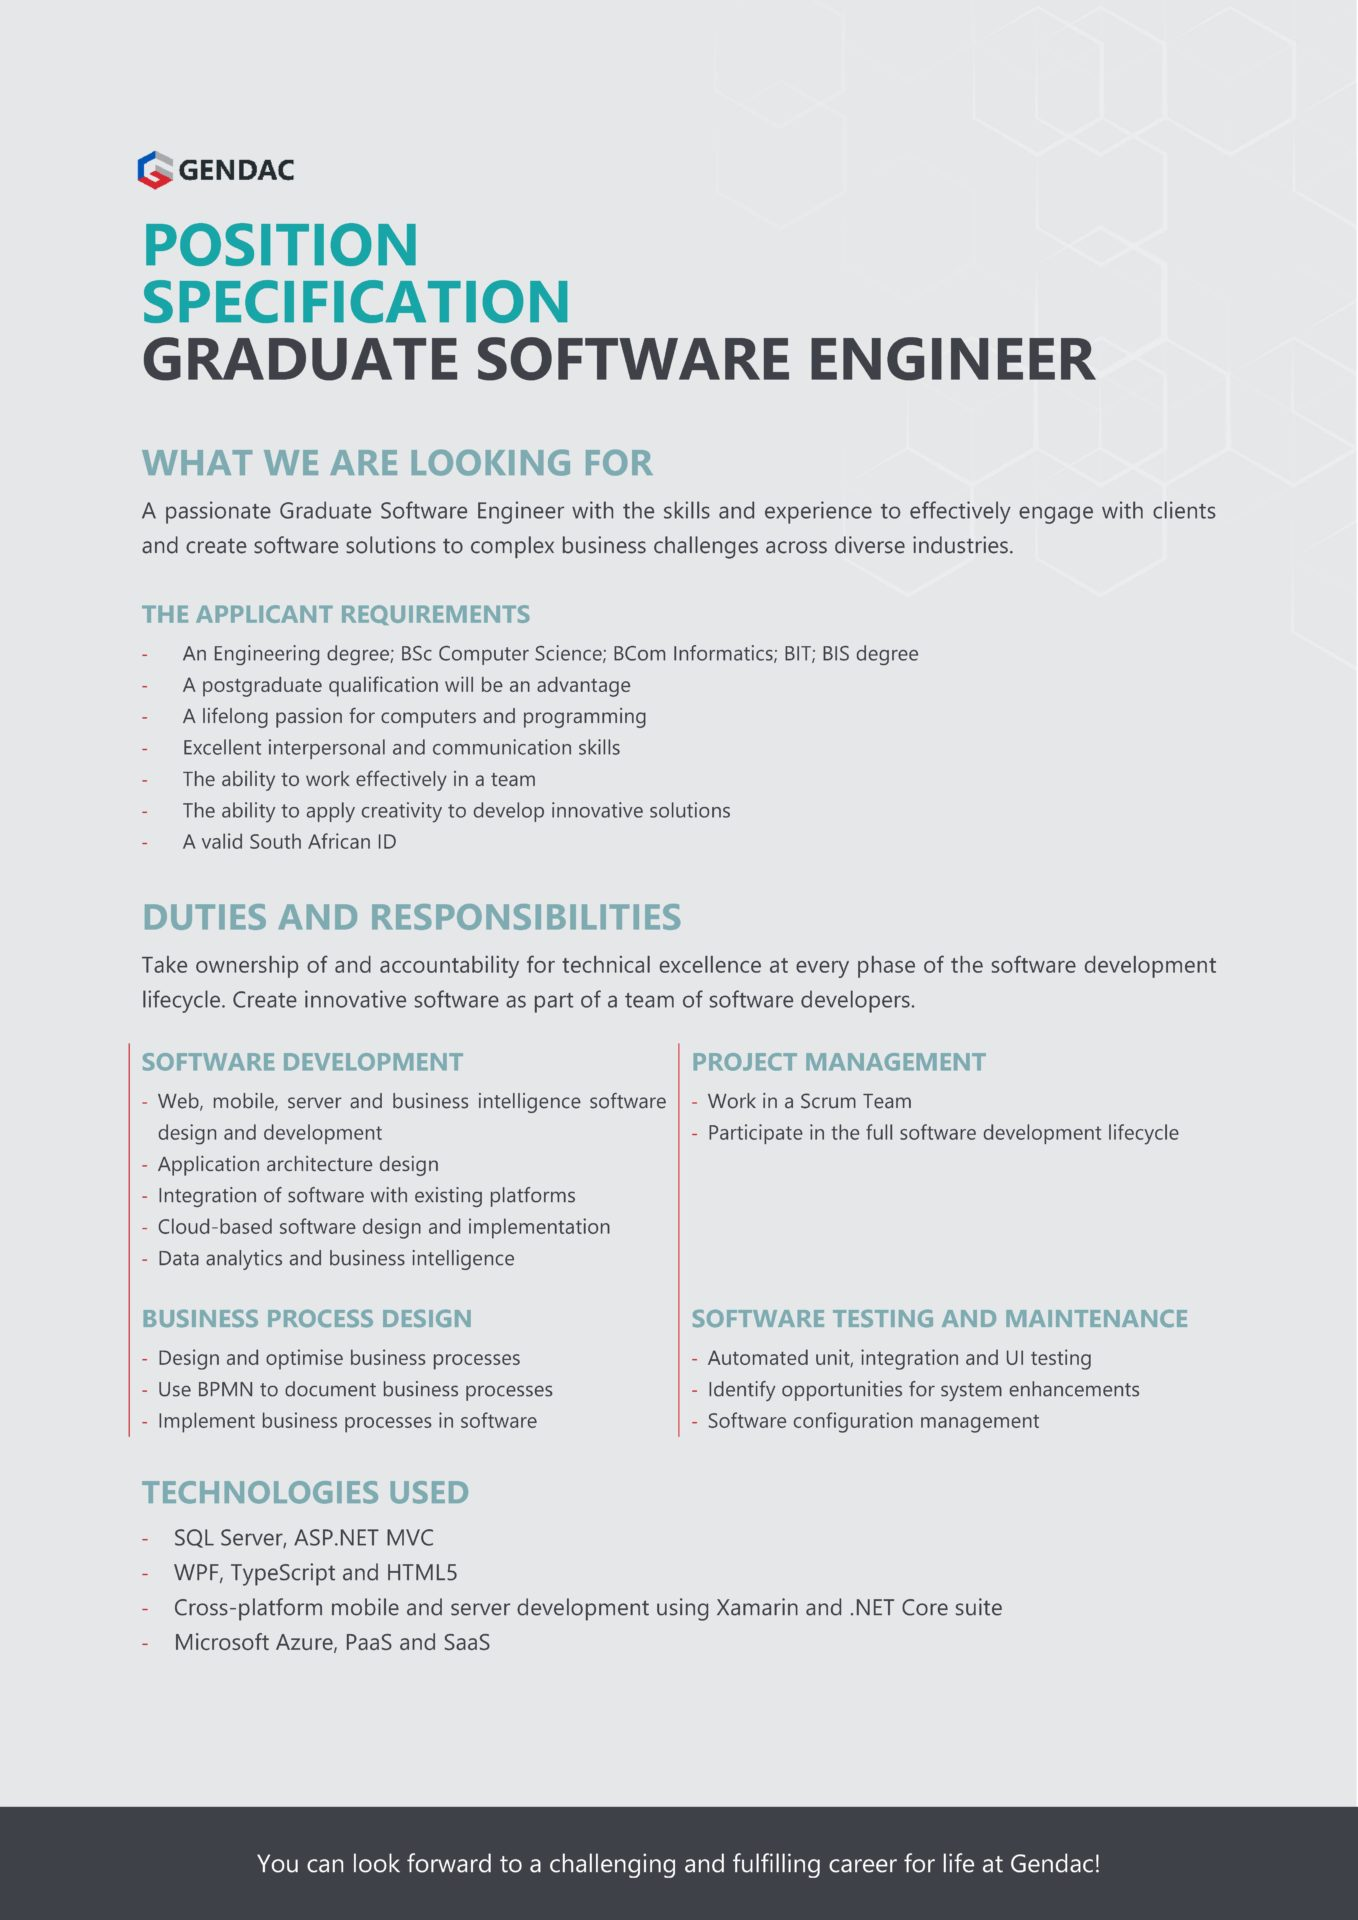 Graduate Software Engineer Job